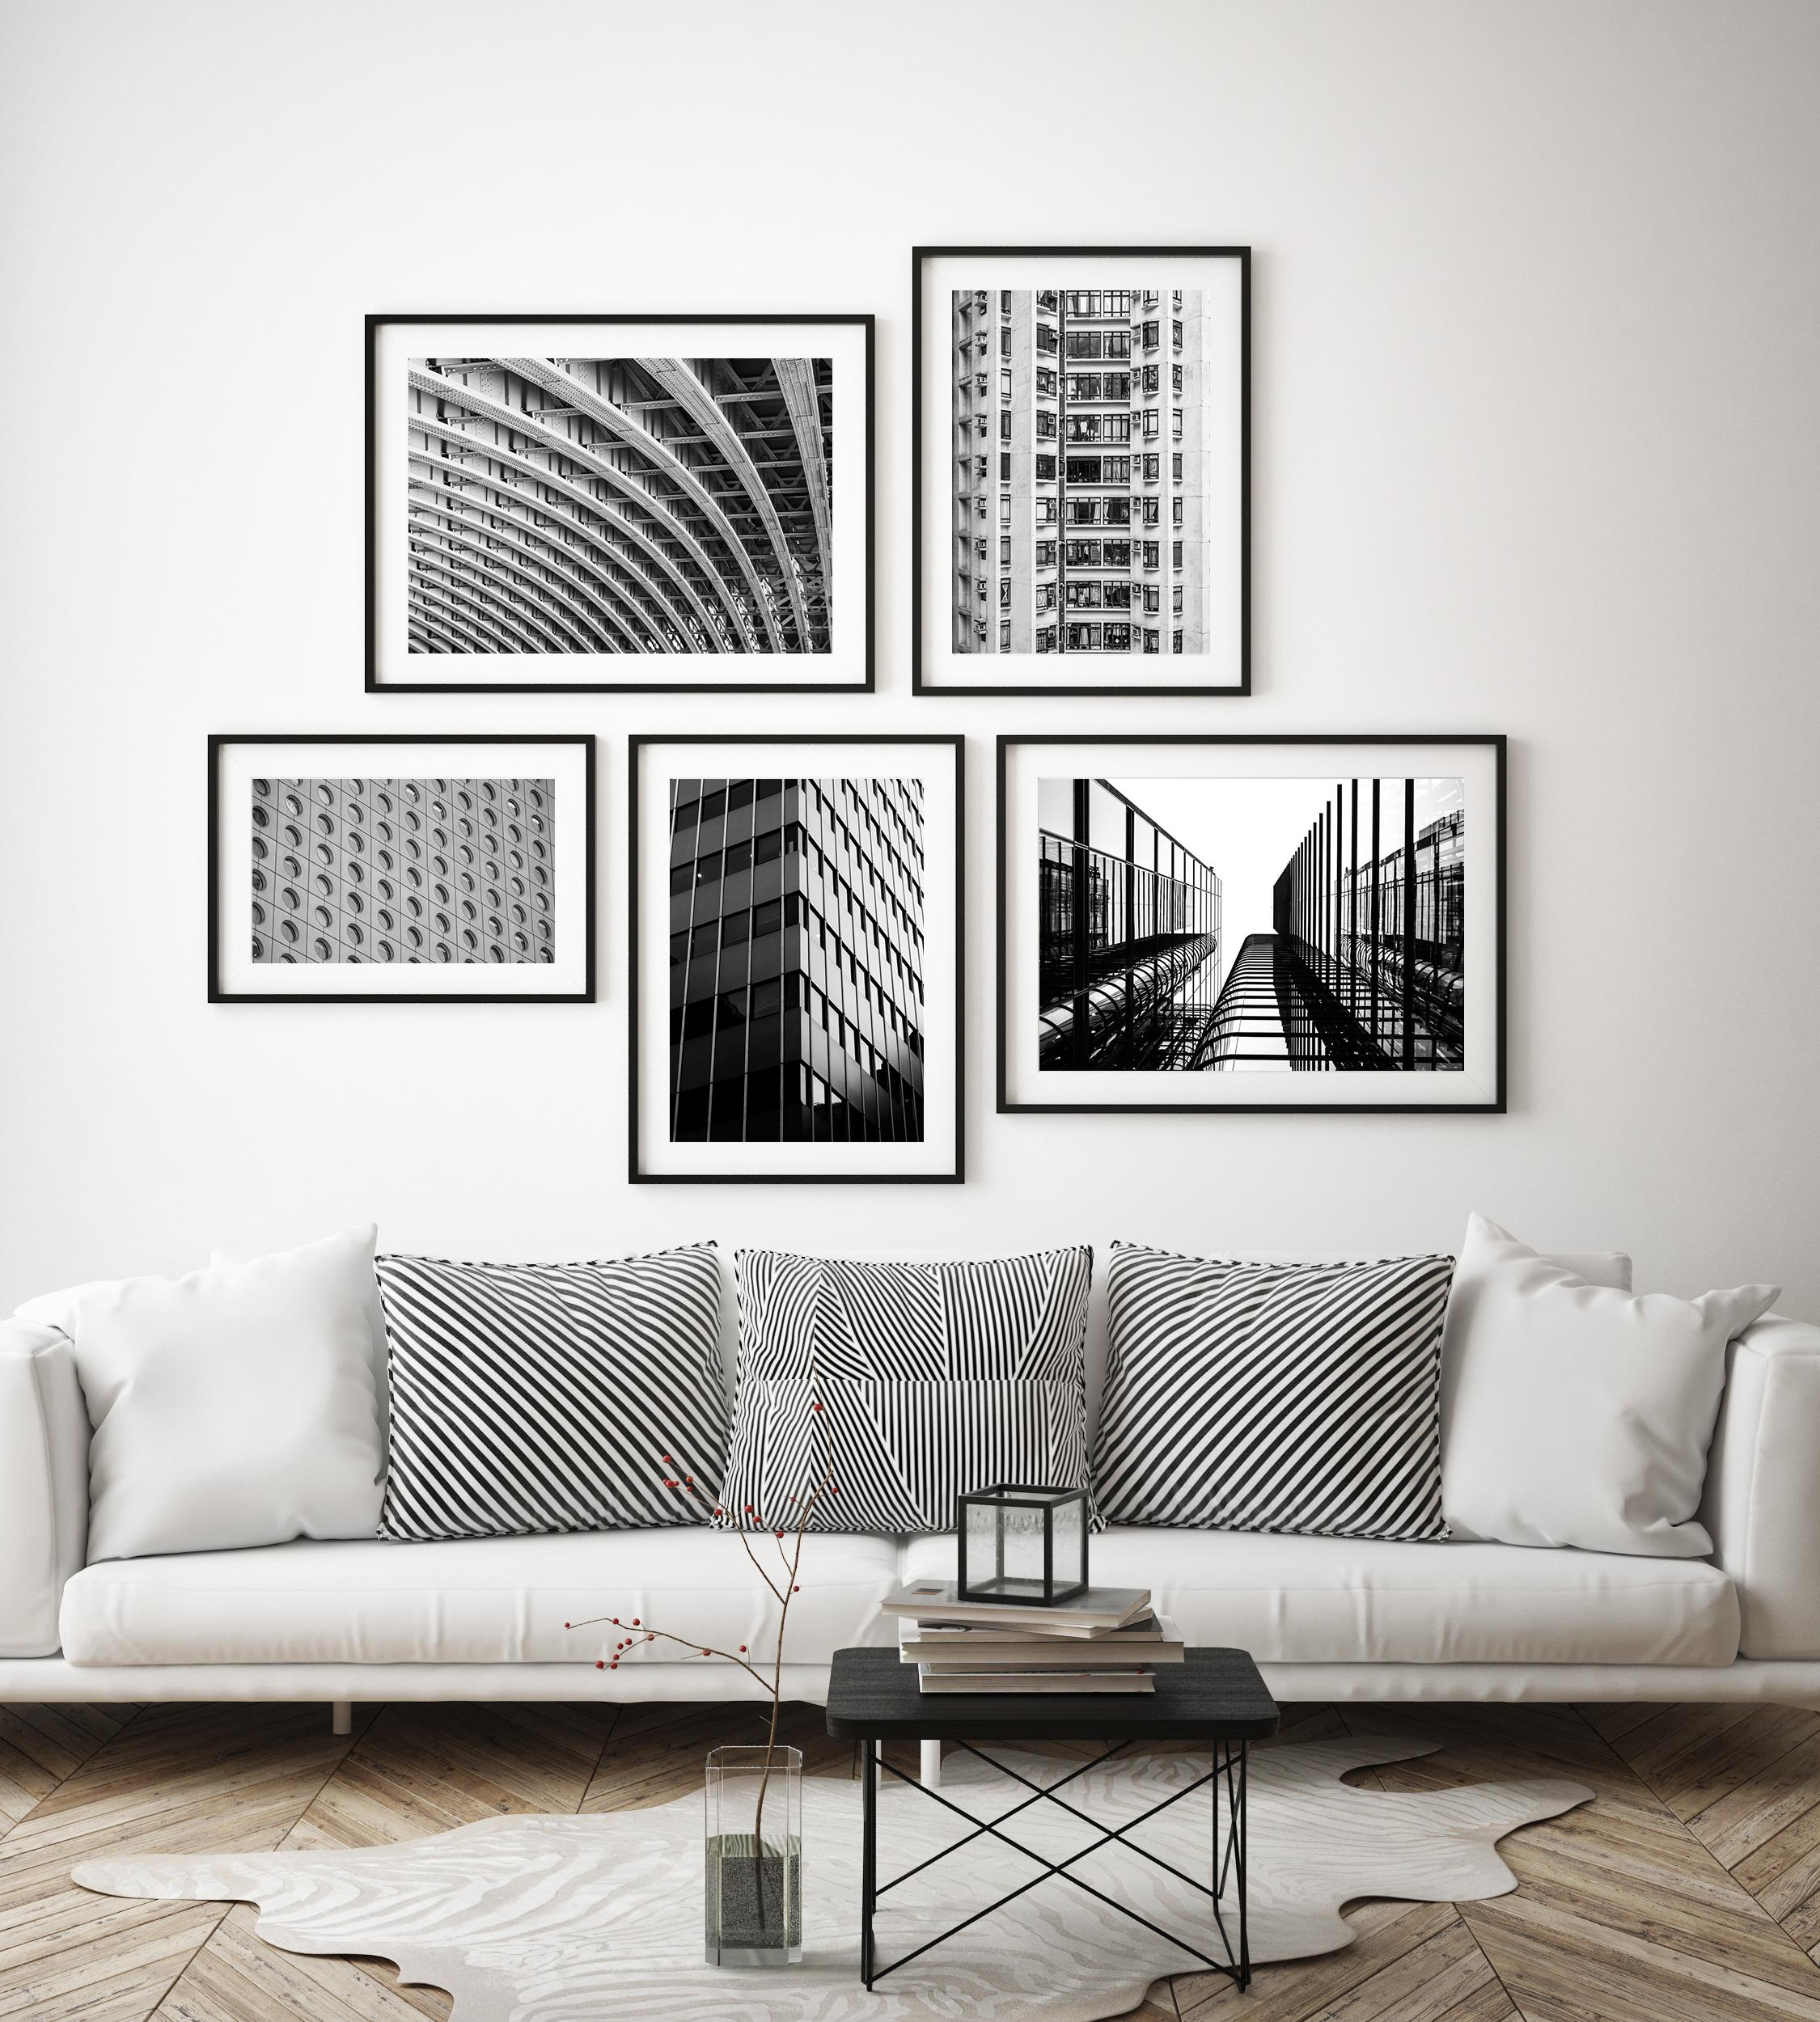 Circles and lines collection of 5 black and white themed prints